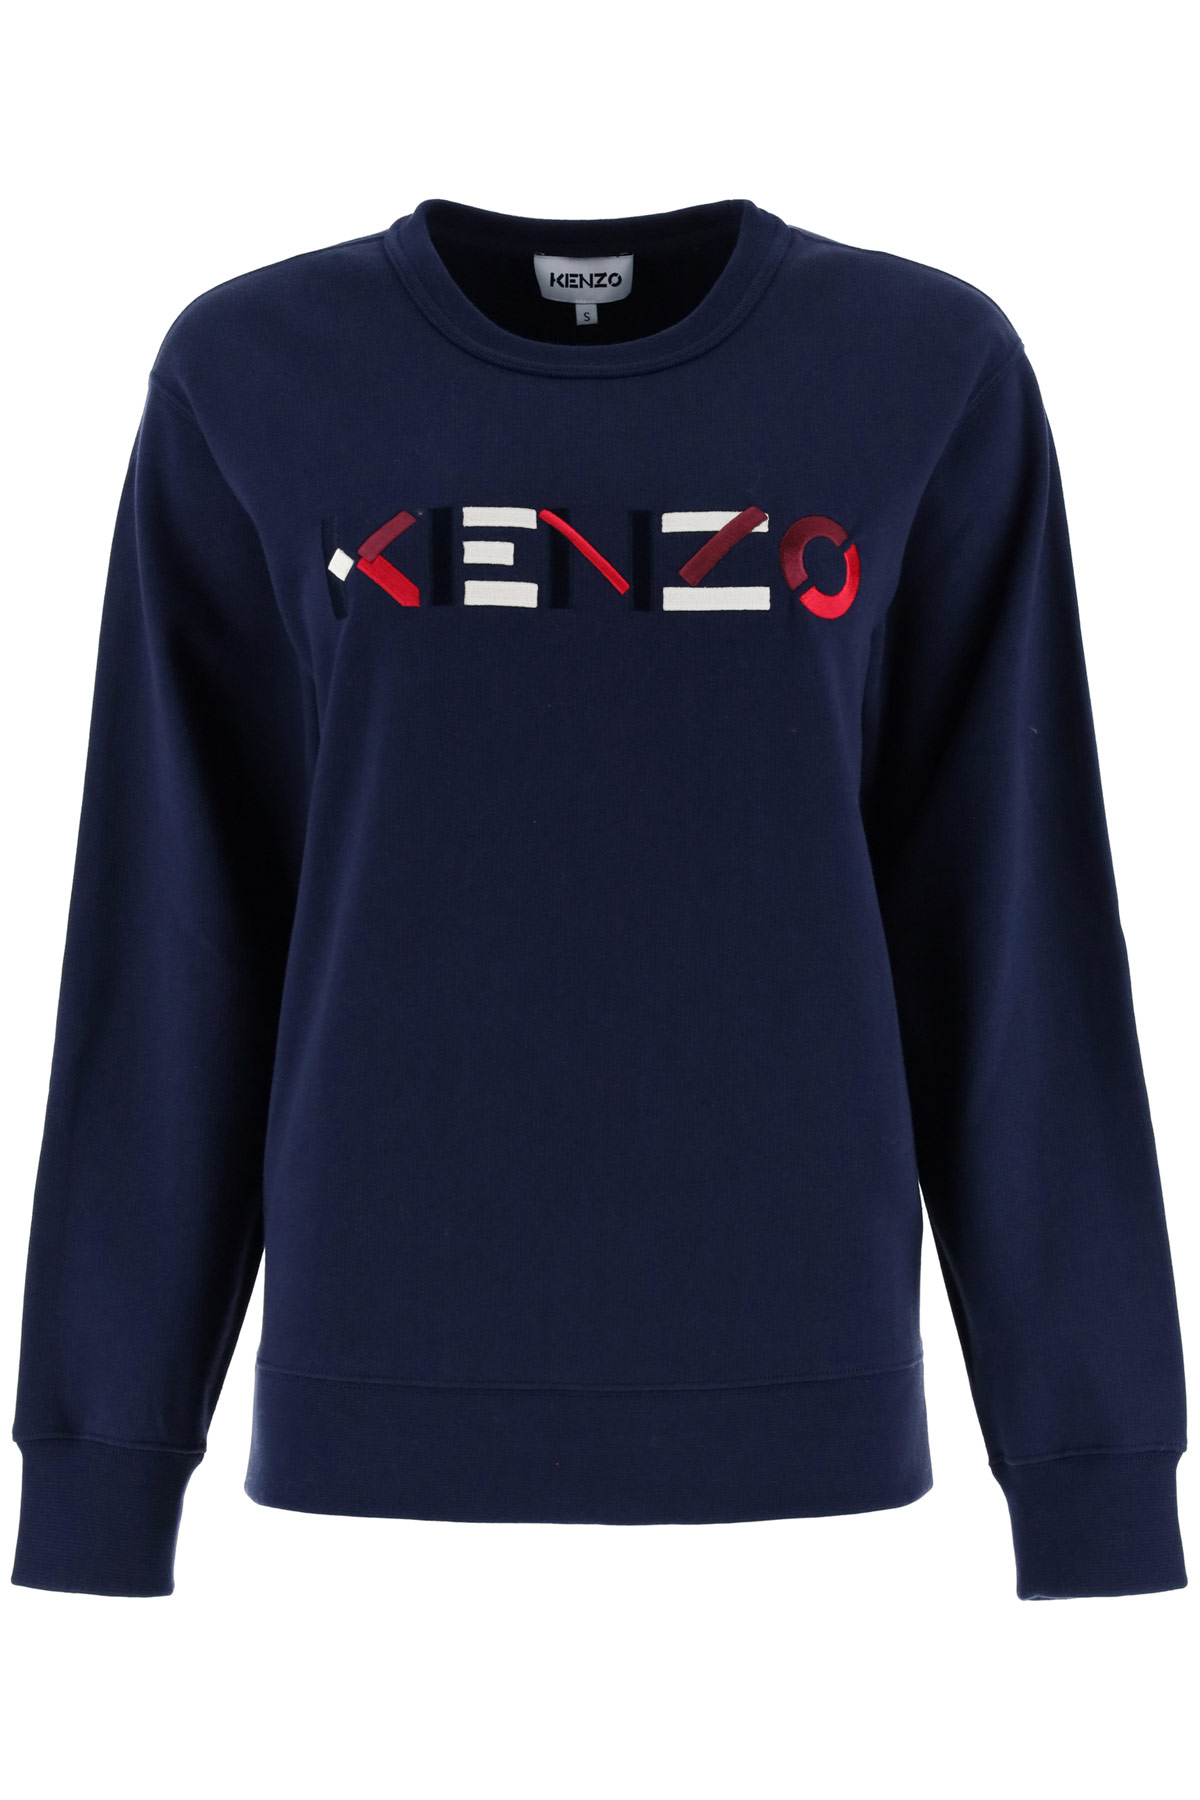 KENZO SWEATSHIRT WITH LOGO EMBROIDERY L Blue Cotton